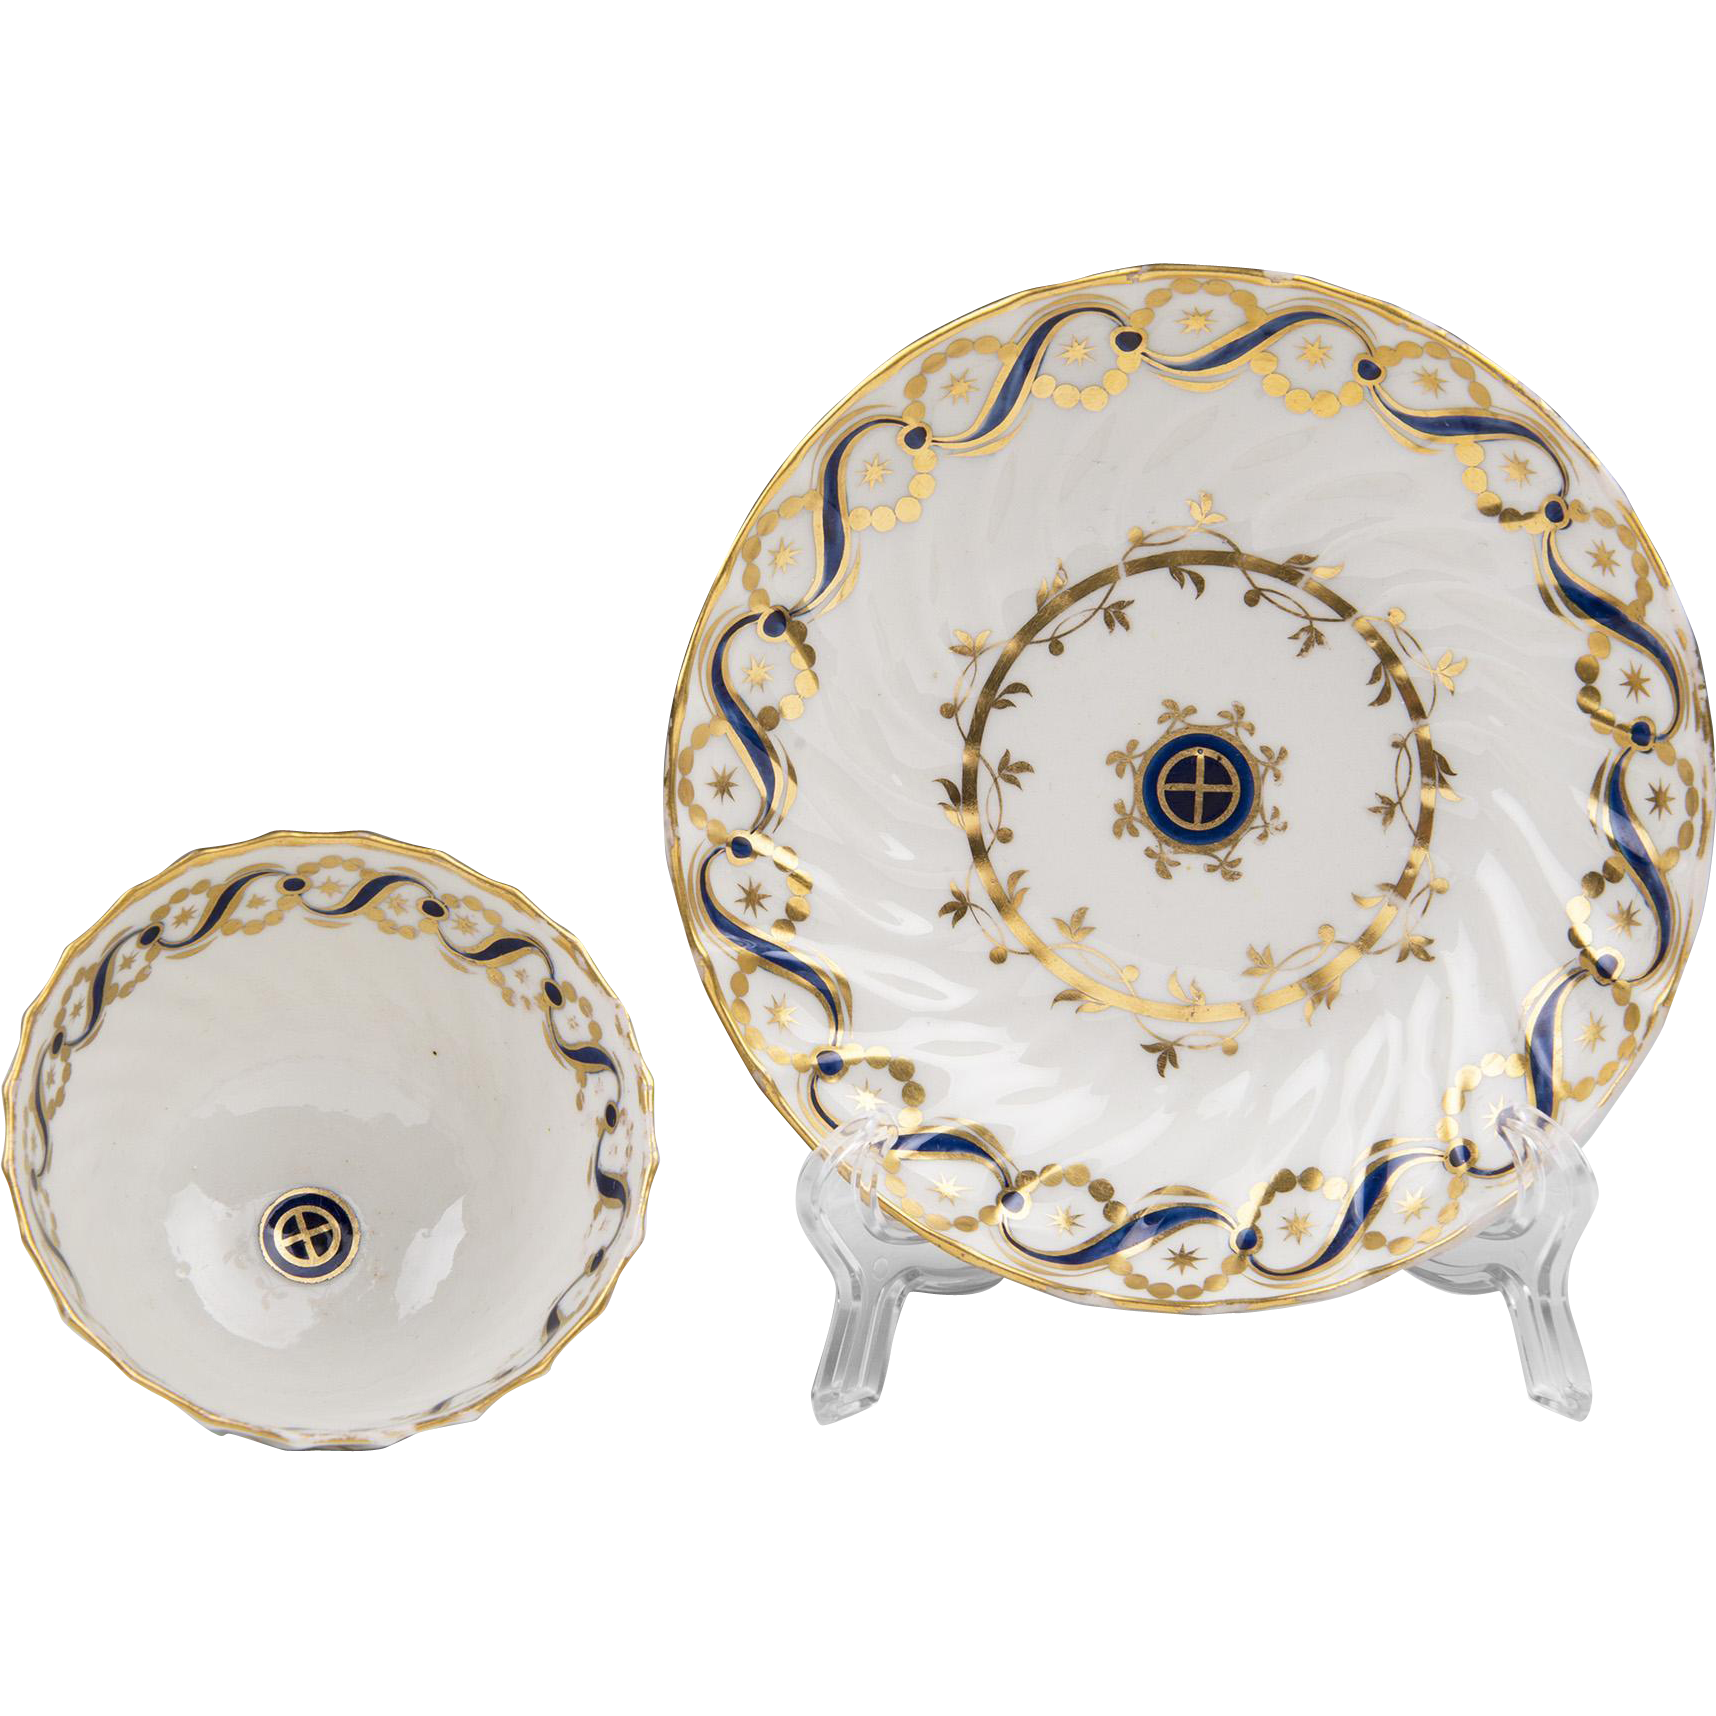 18th C. English Soft Paste Porcelain Tea Bowl and Saucer, Attributed To Caughley